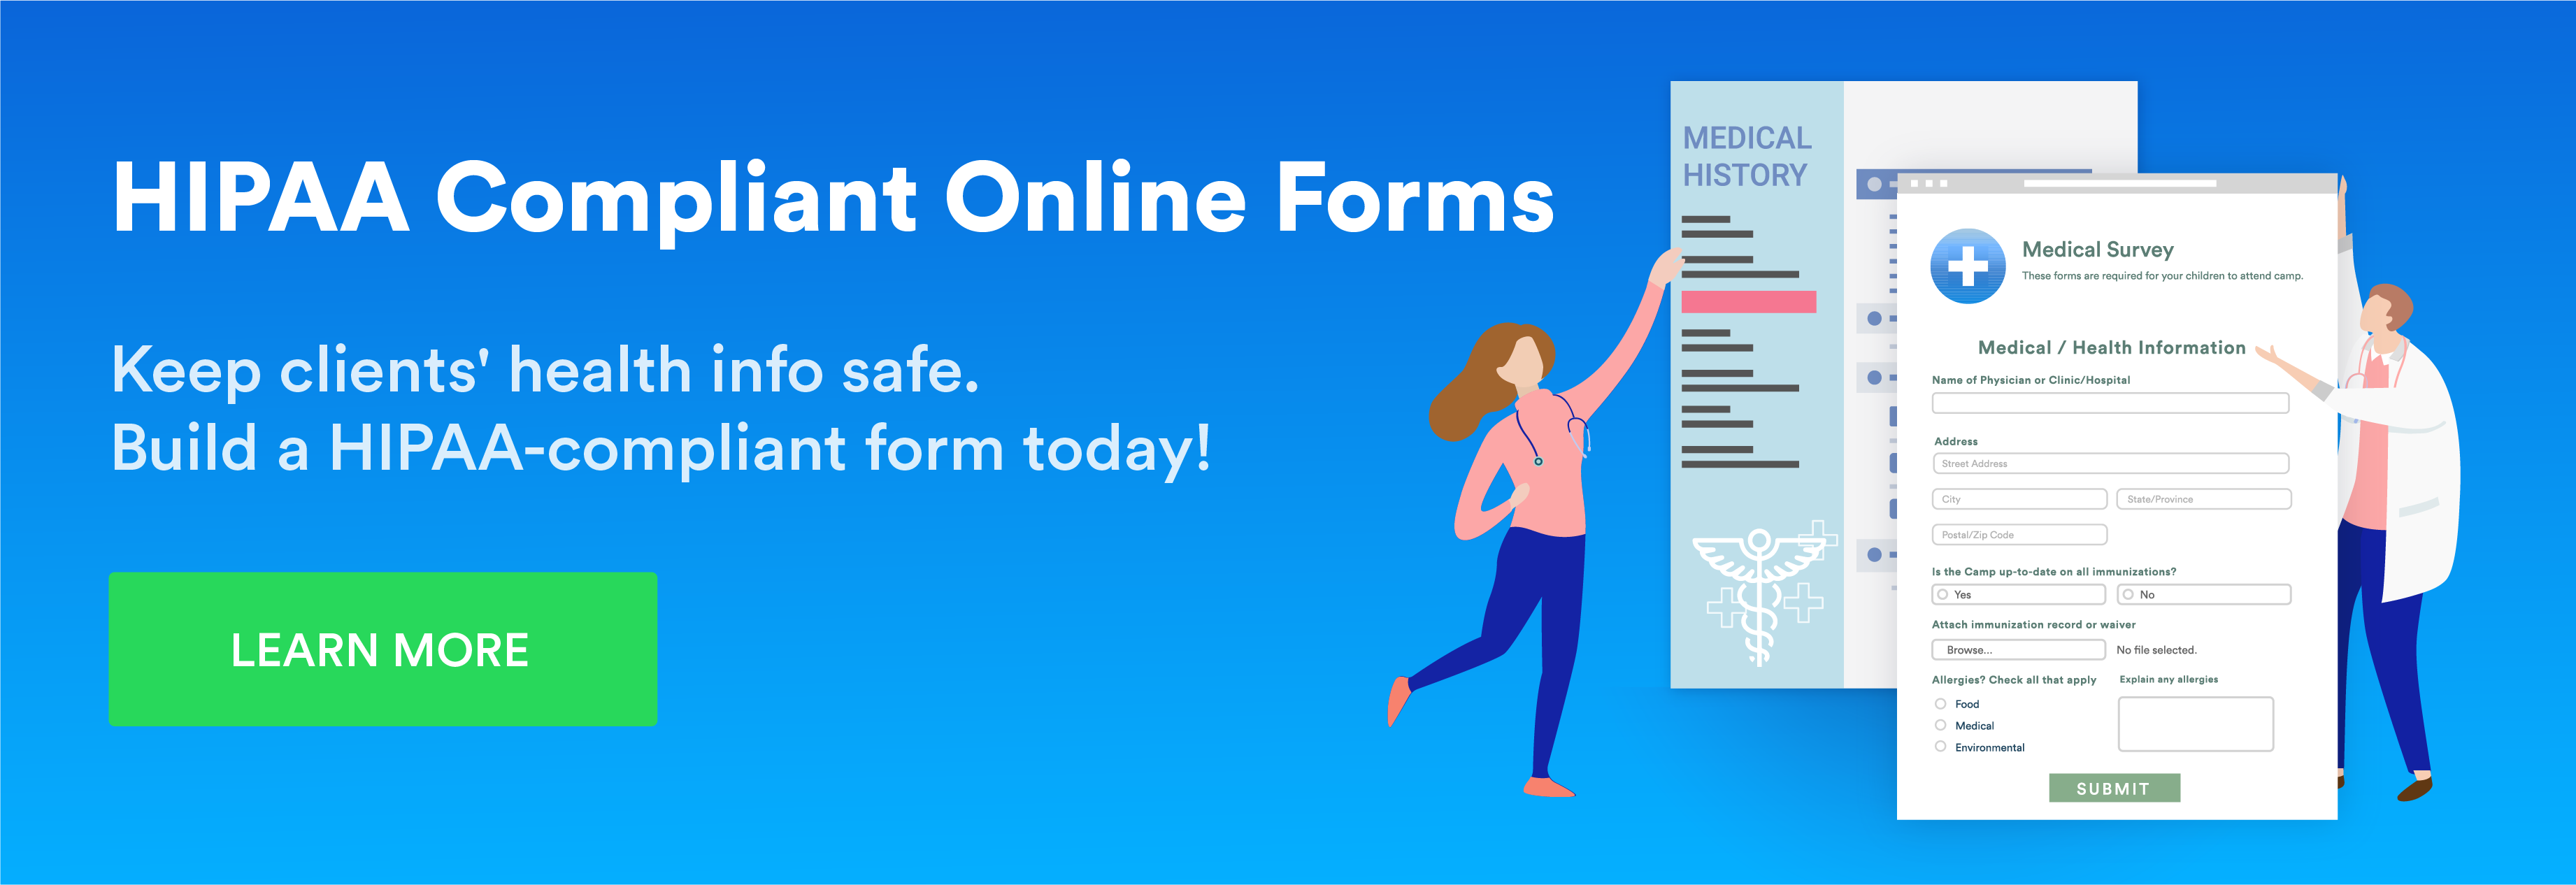 Keep clients' health info safe. Build a HIPAA-compliant form today!